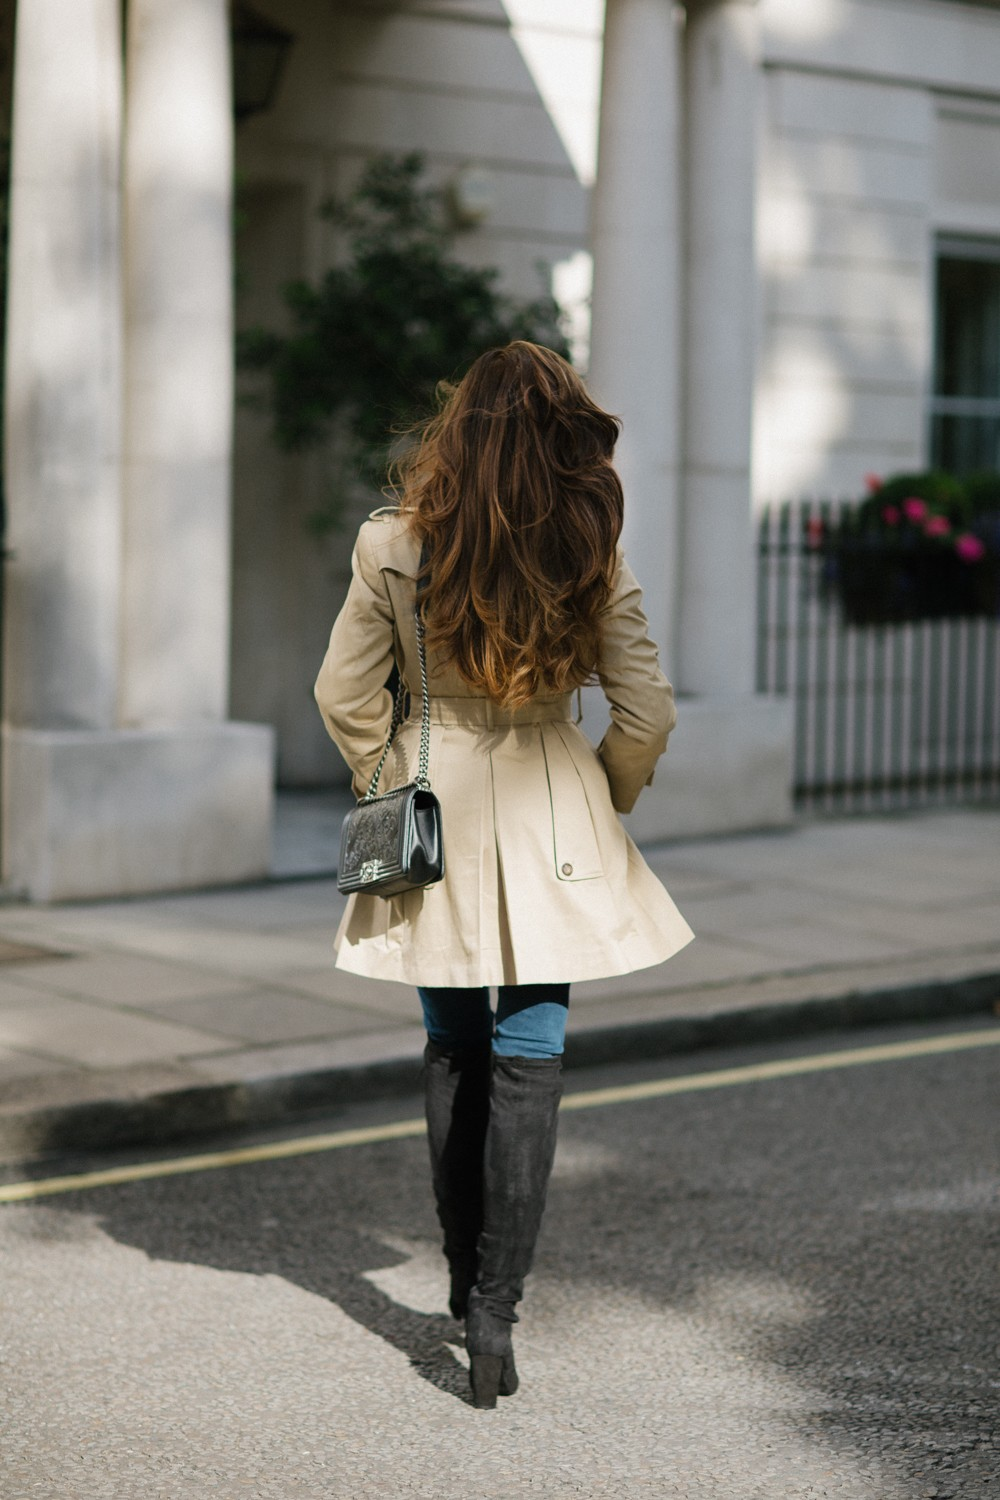 Trench coat and boots